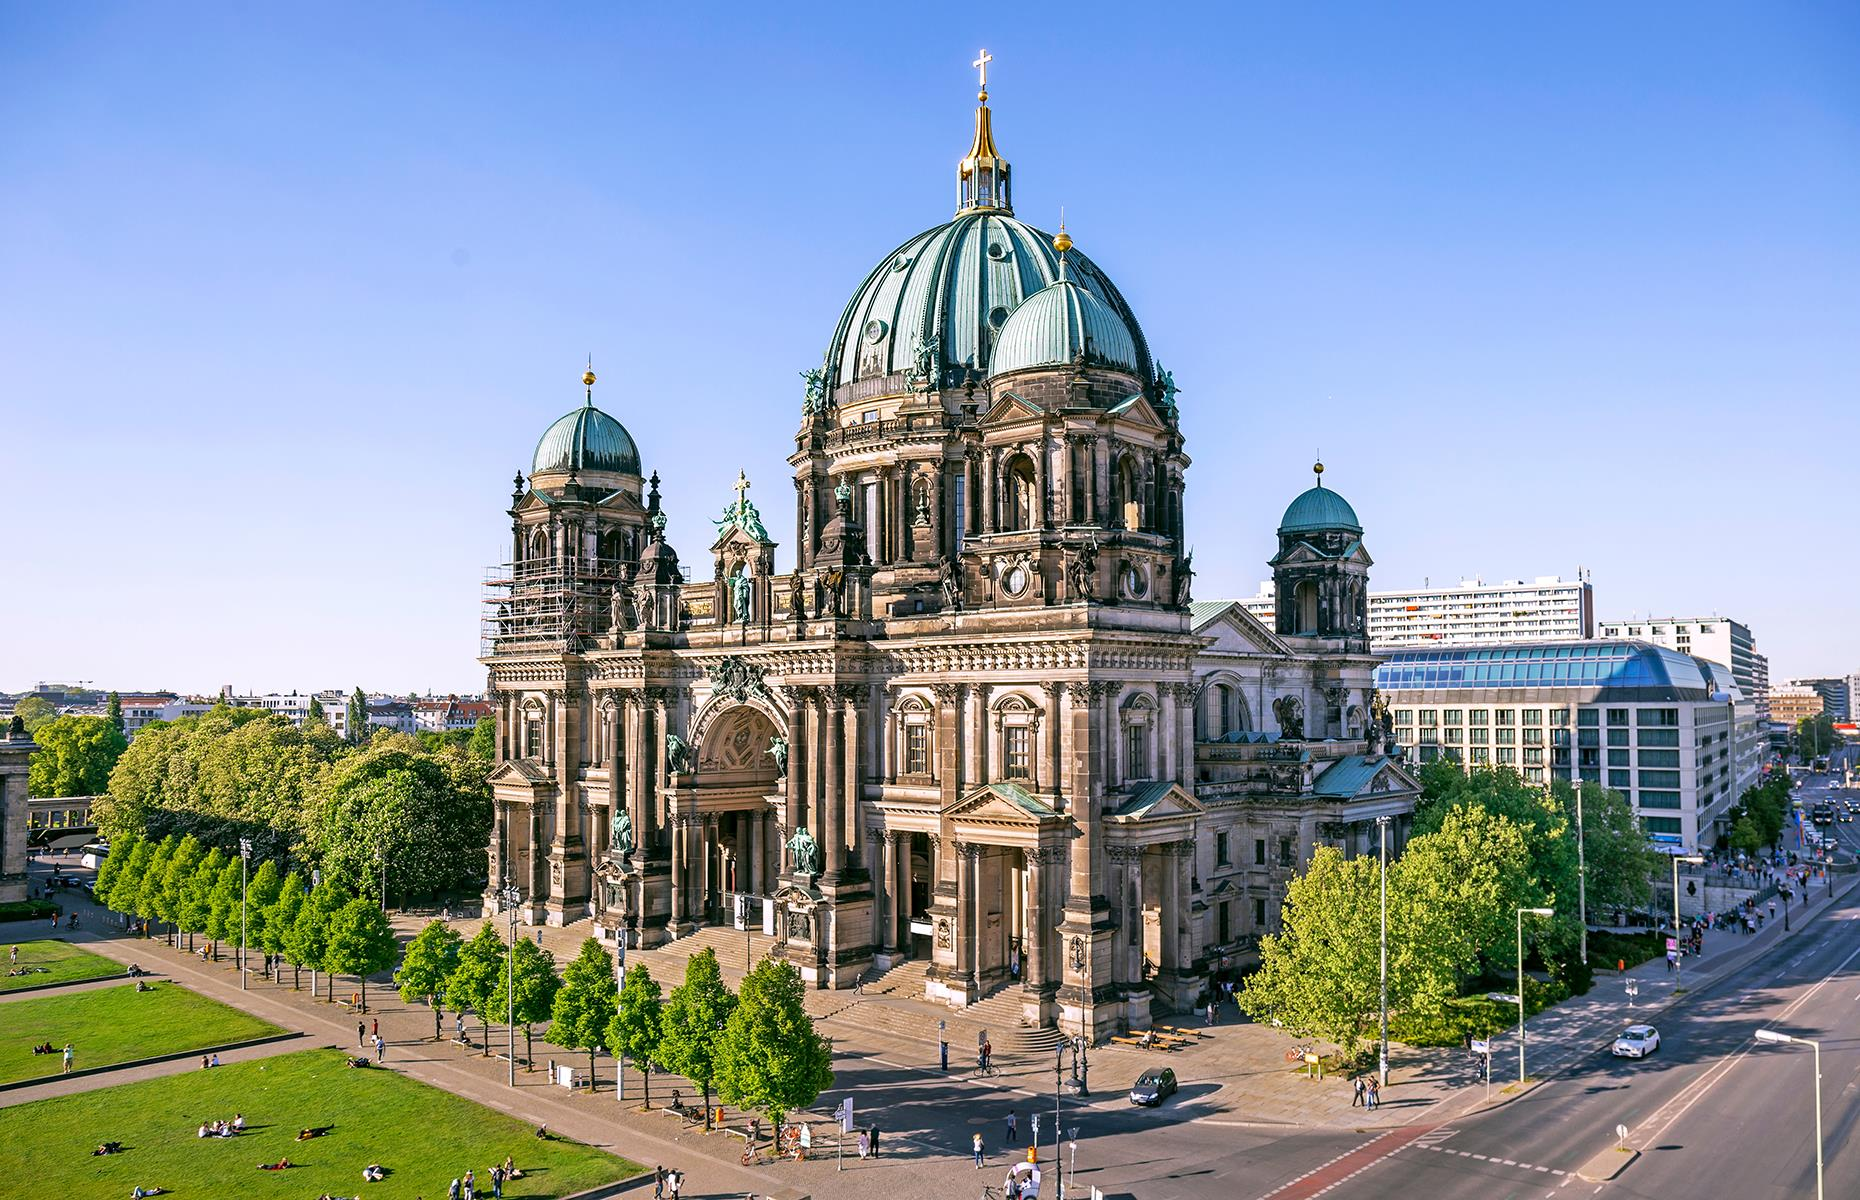 Slide 9 of 31: Despite its name, Berlin Cathedral has never been an actual cathedral as it's never been the seat of a bishop, but it's still a stunner. The Neo-Renaissance building has four towers and an impressive dome topped with a golden cross. Located on Berlin's Museum Island, the church was finished in 1905 and houses not only a place of worship but a museum and concert hall too. Plan your visit to Berlin with our top guide.